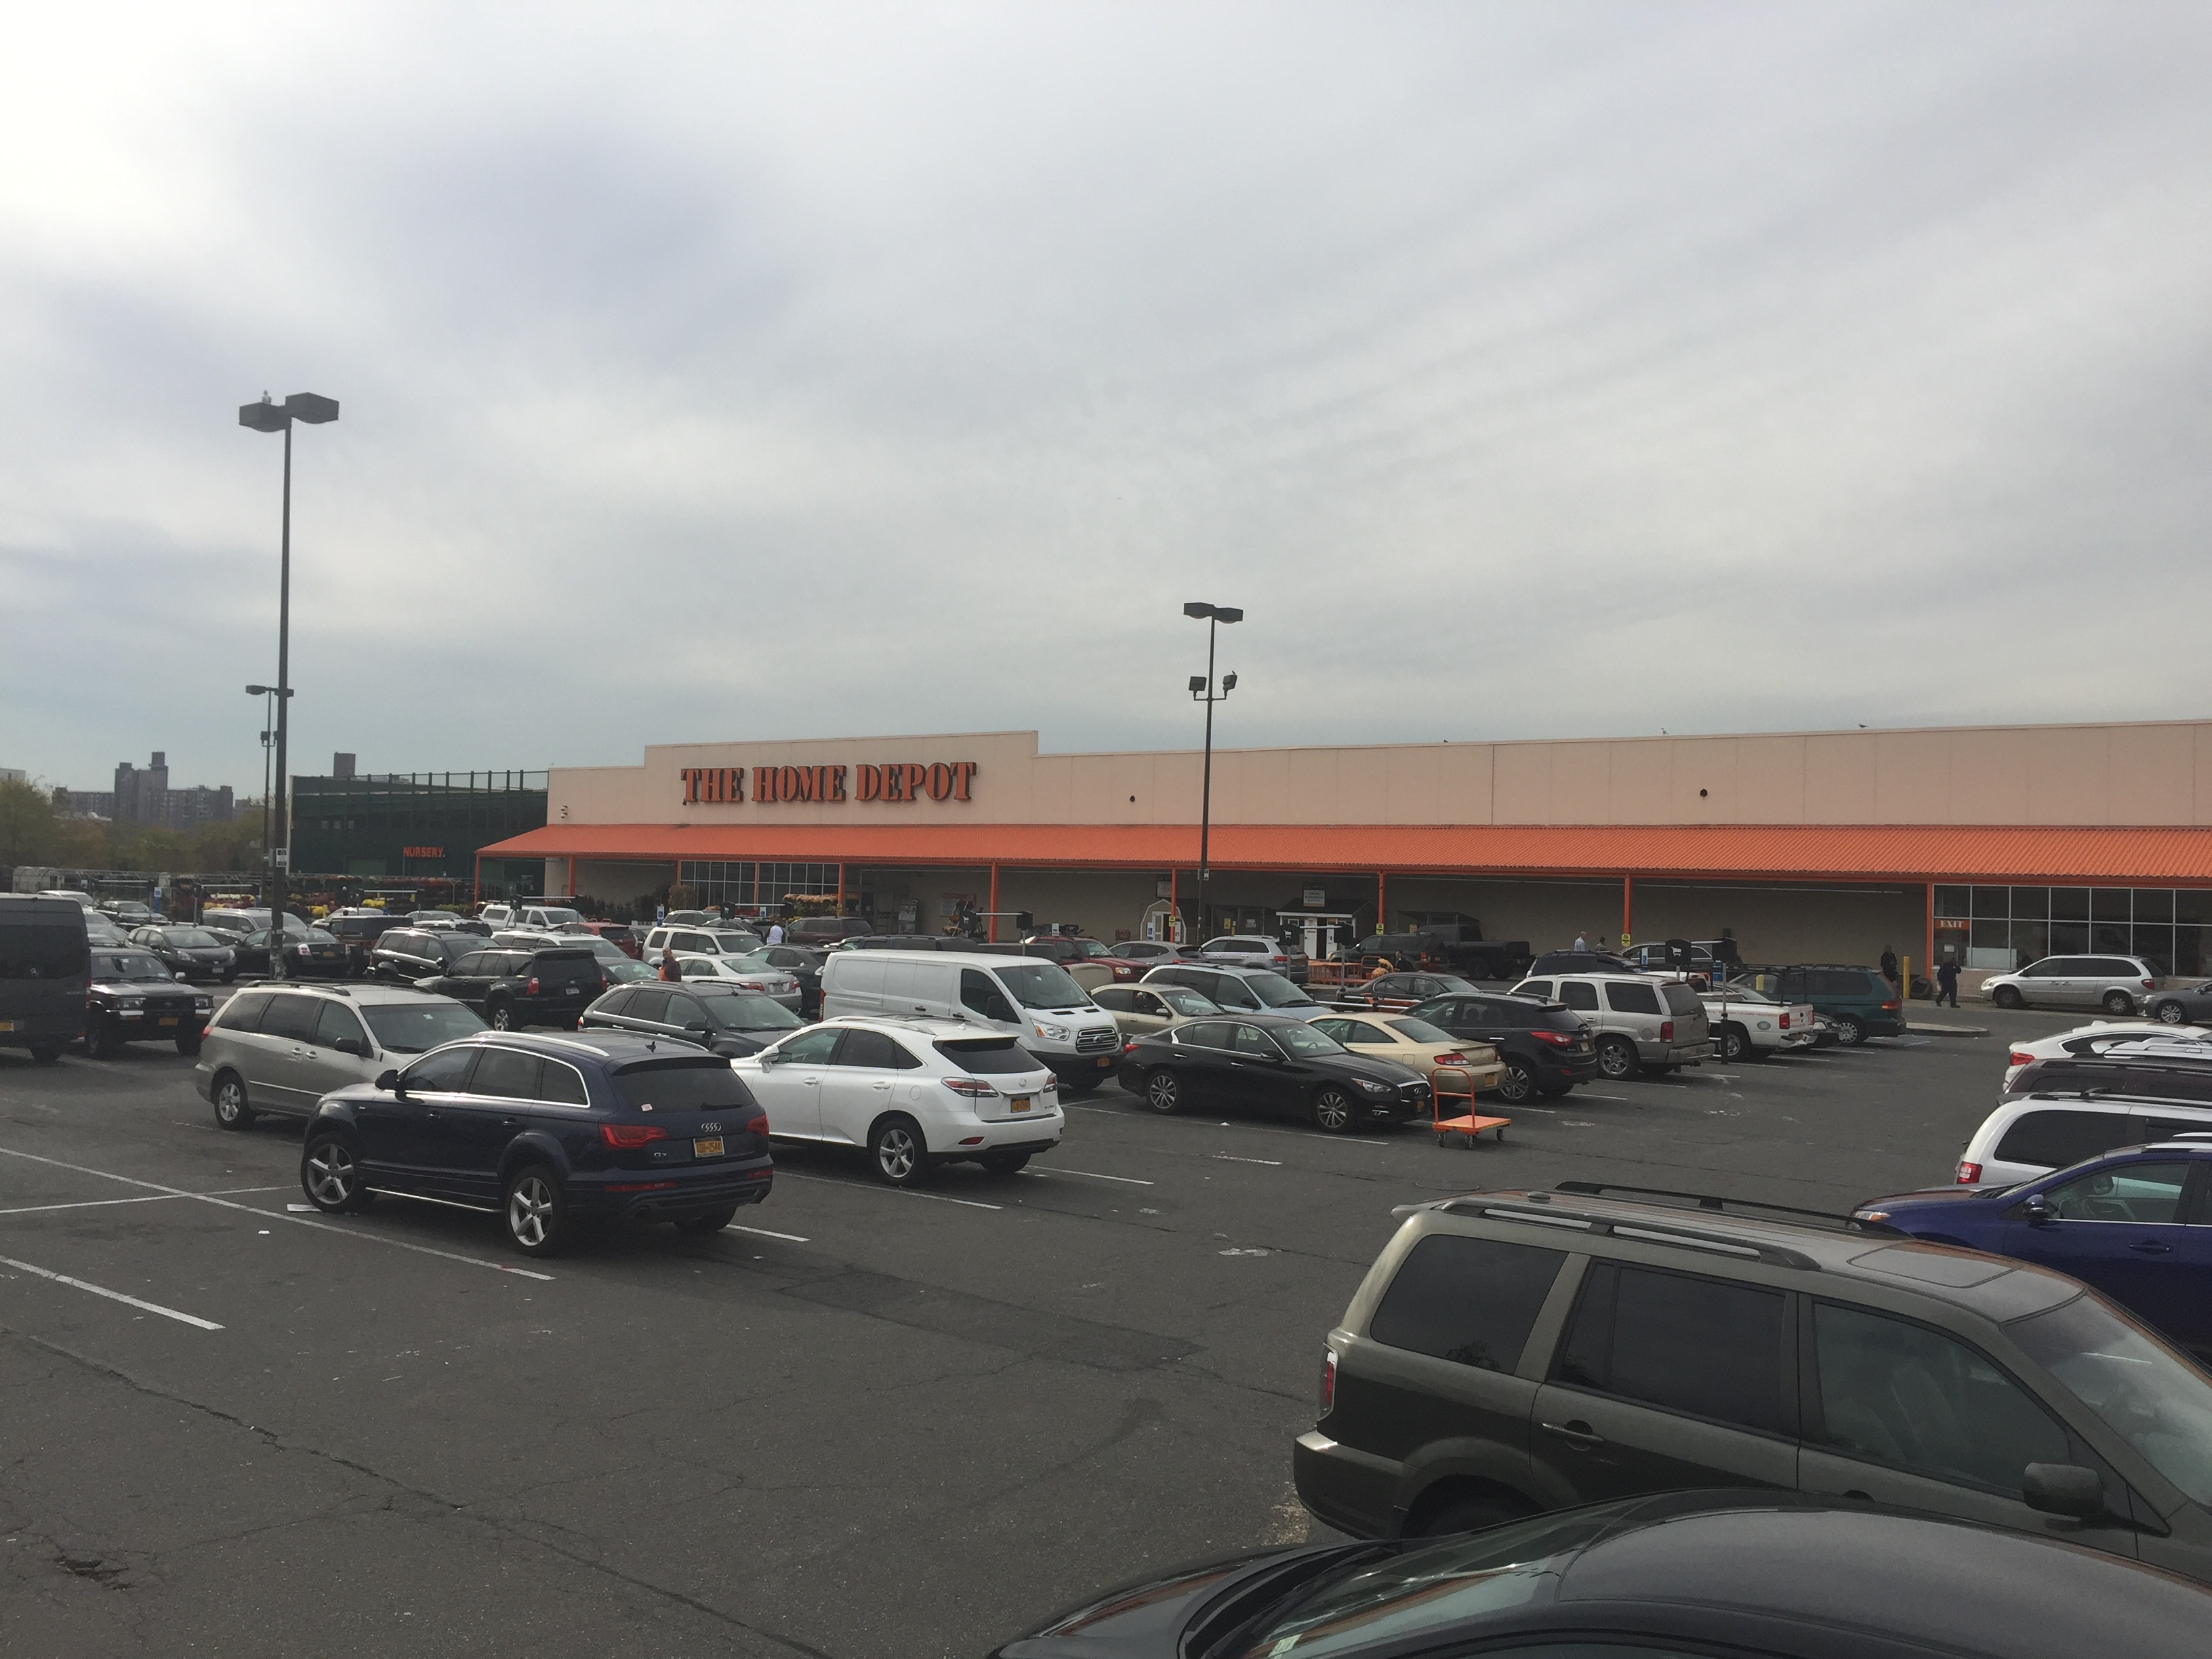 The Home Depot 2970 Cropsey Avenue Brooklyn, NY Home Depot - MapQuest